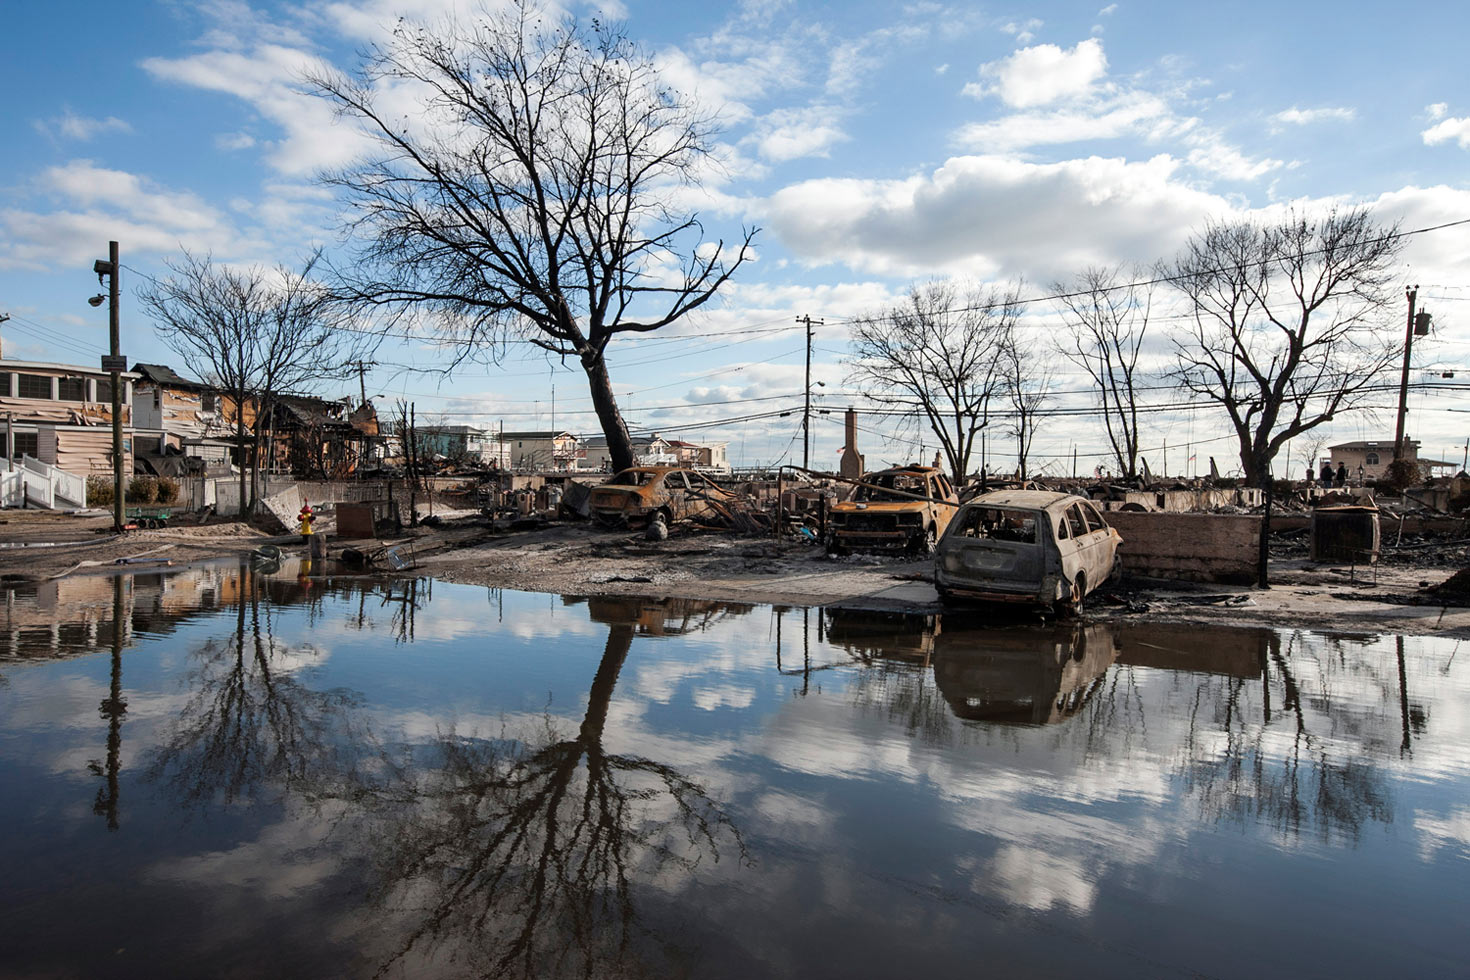 Breezy Point, Queens, November 4, 2012